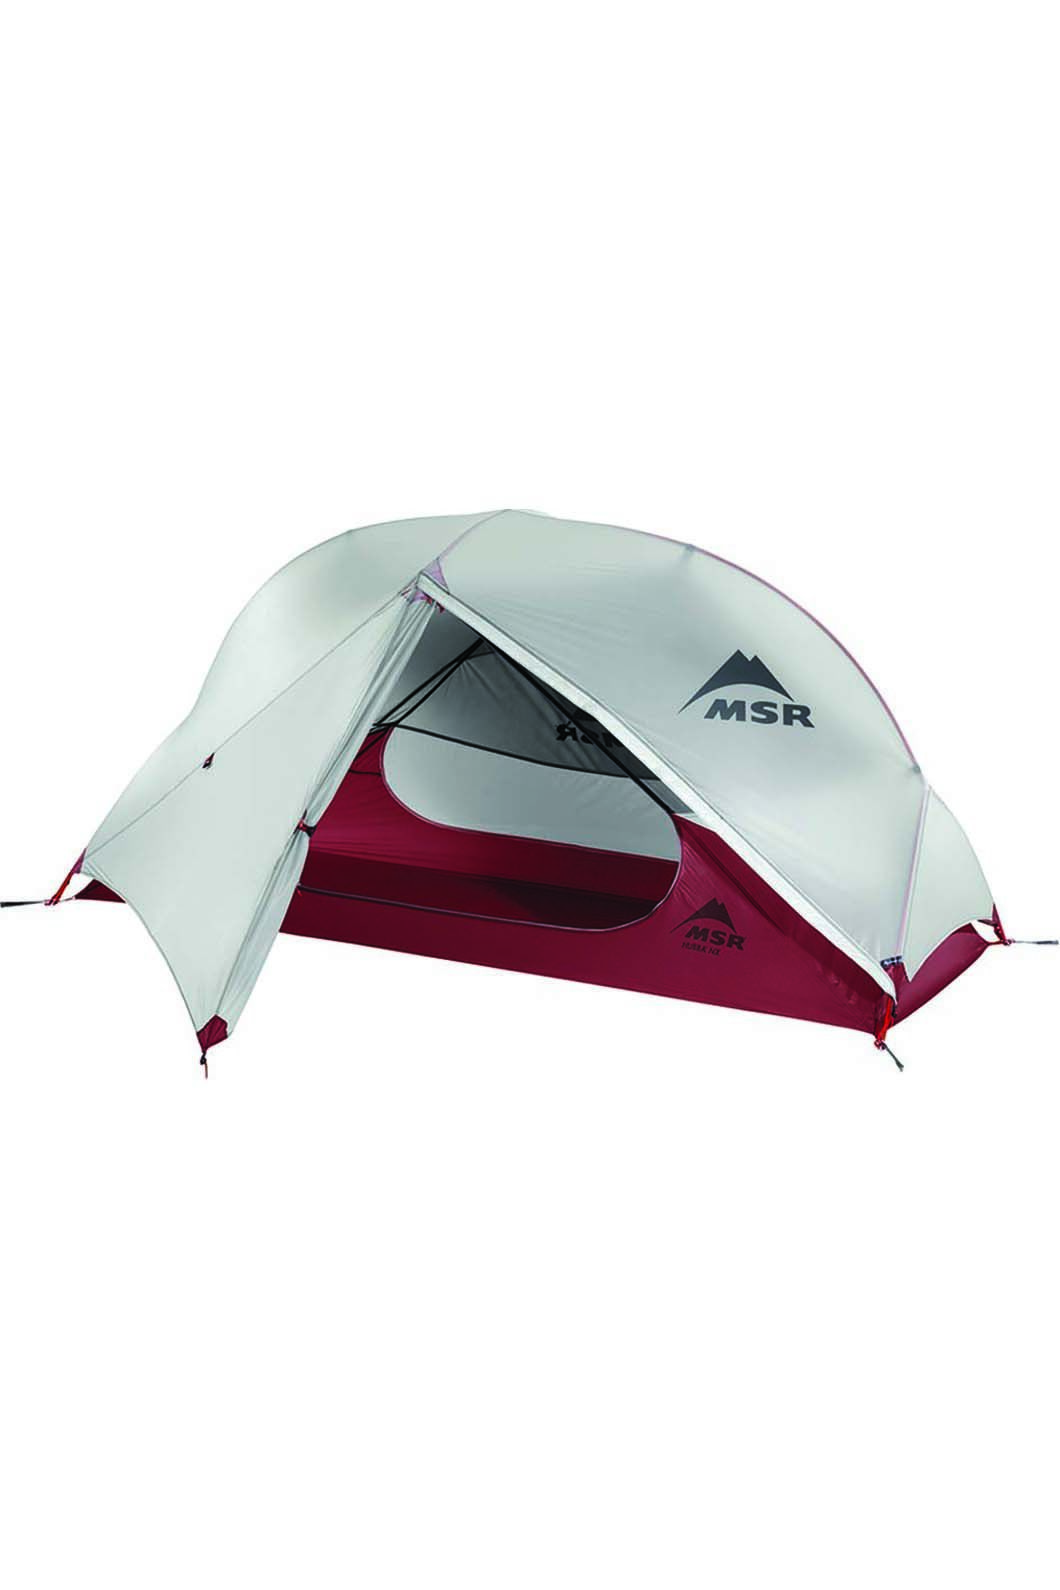 MSR Hubba 1 Person Hiking Tent, None, hi-res